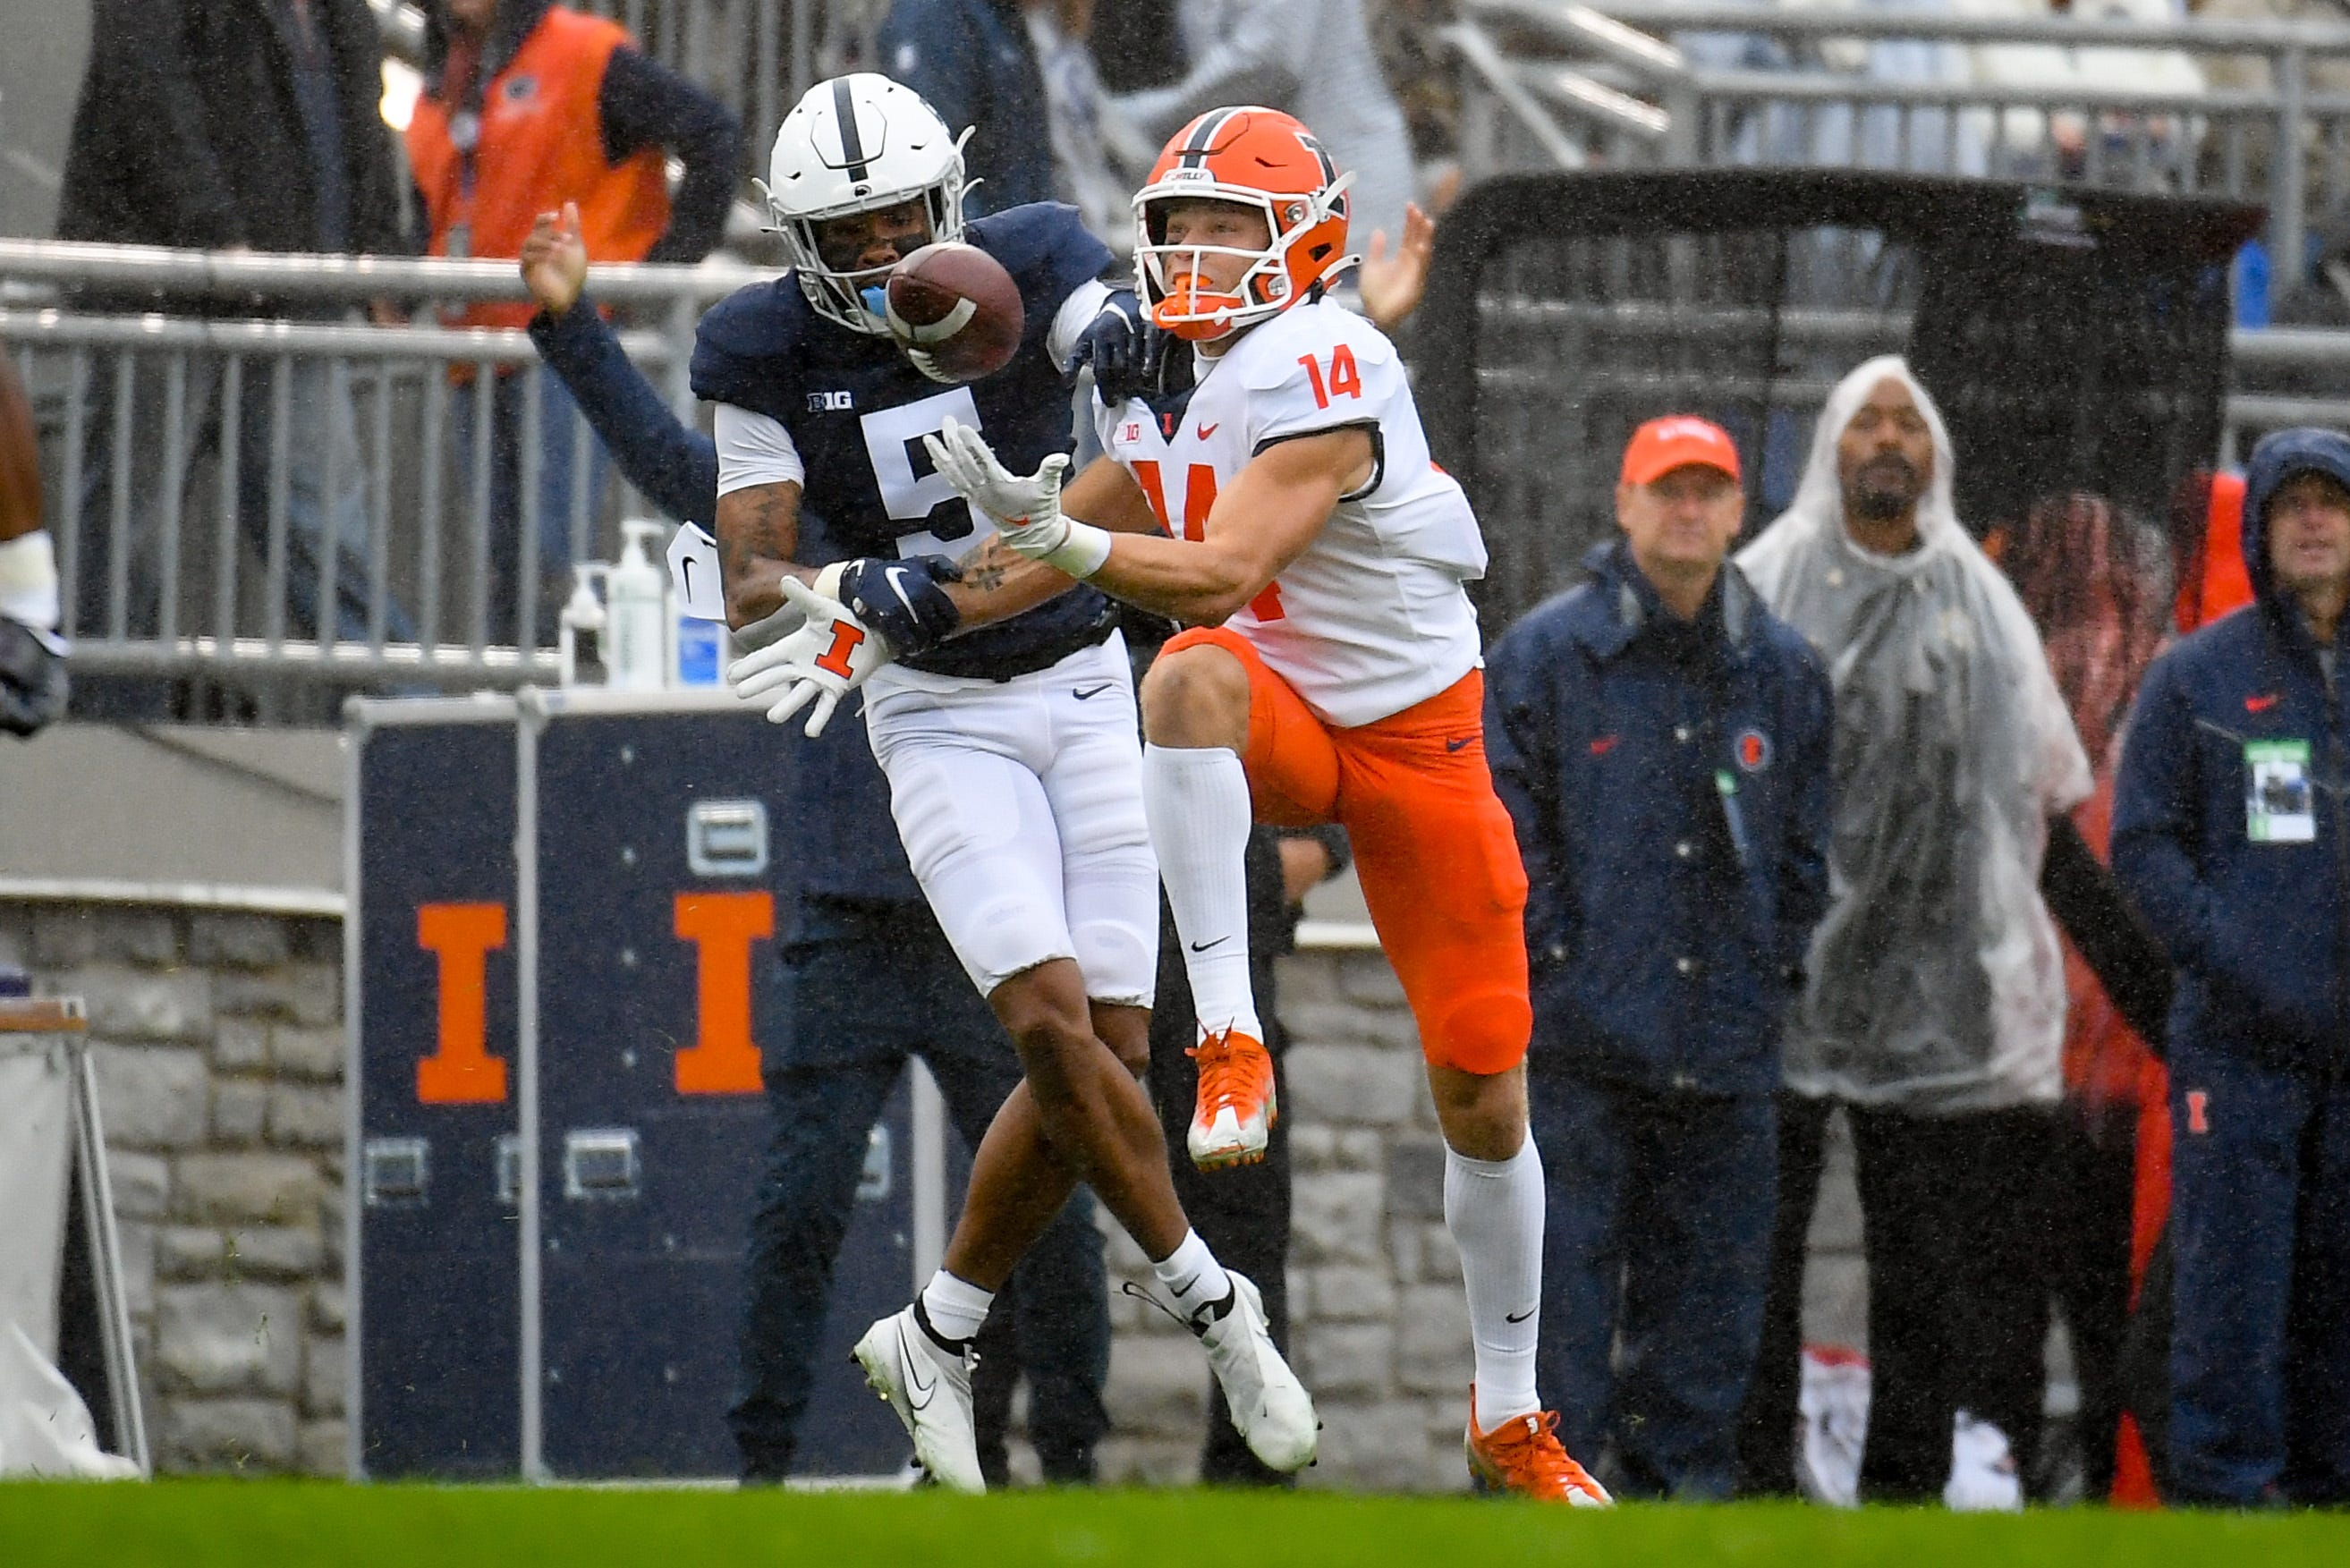 Illinois outlasts No. 8 Penn State, 20-18, in college football s first 9OT game